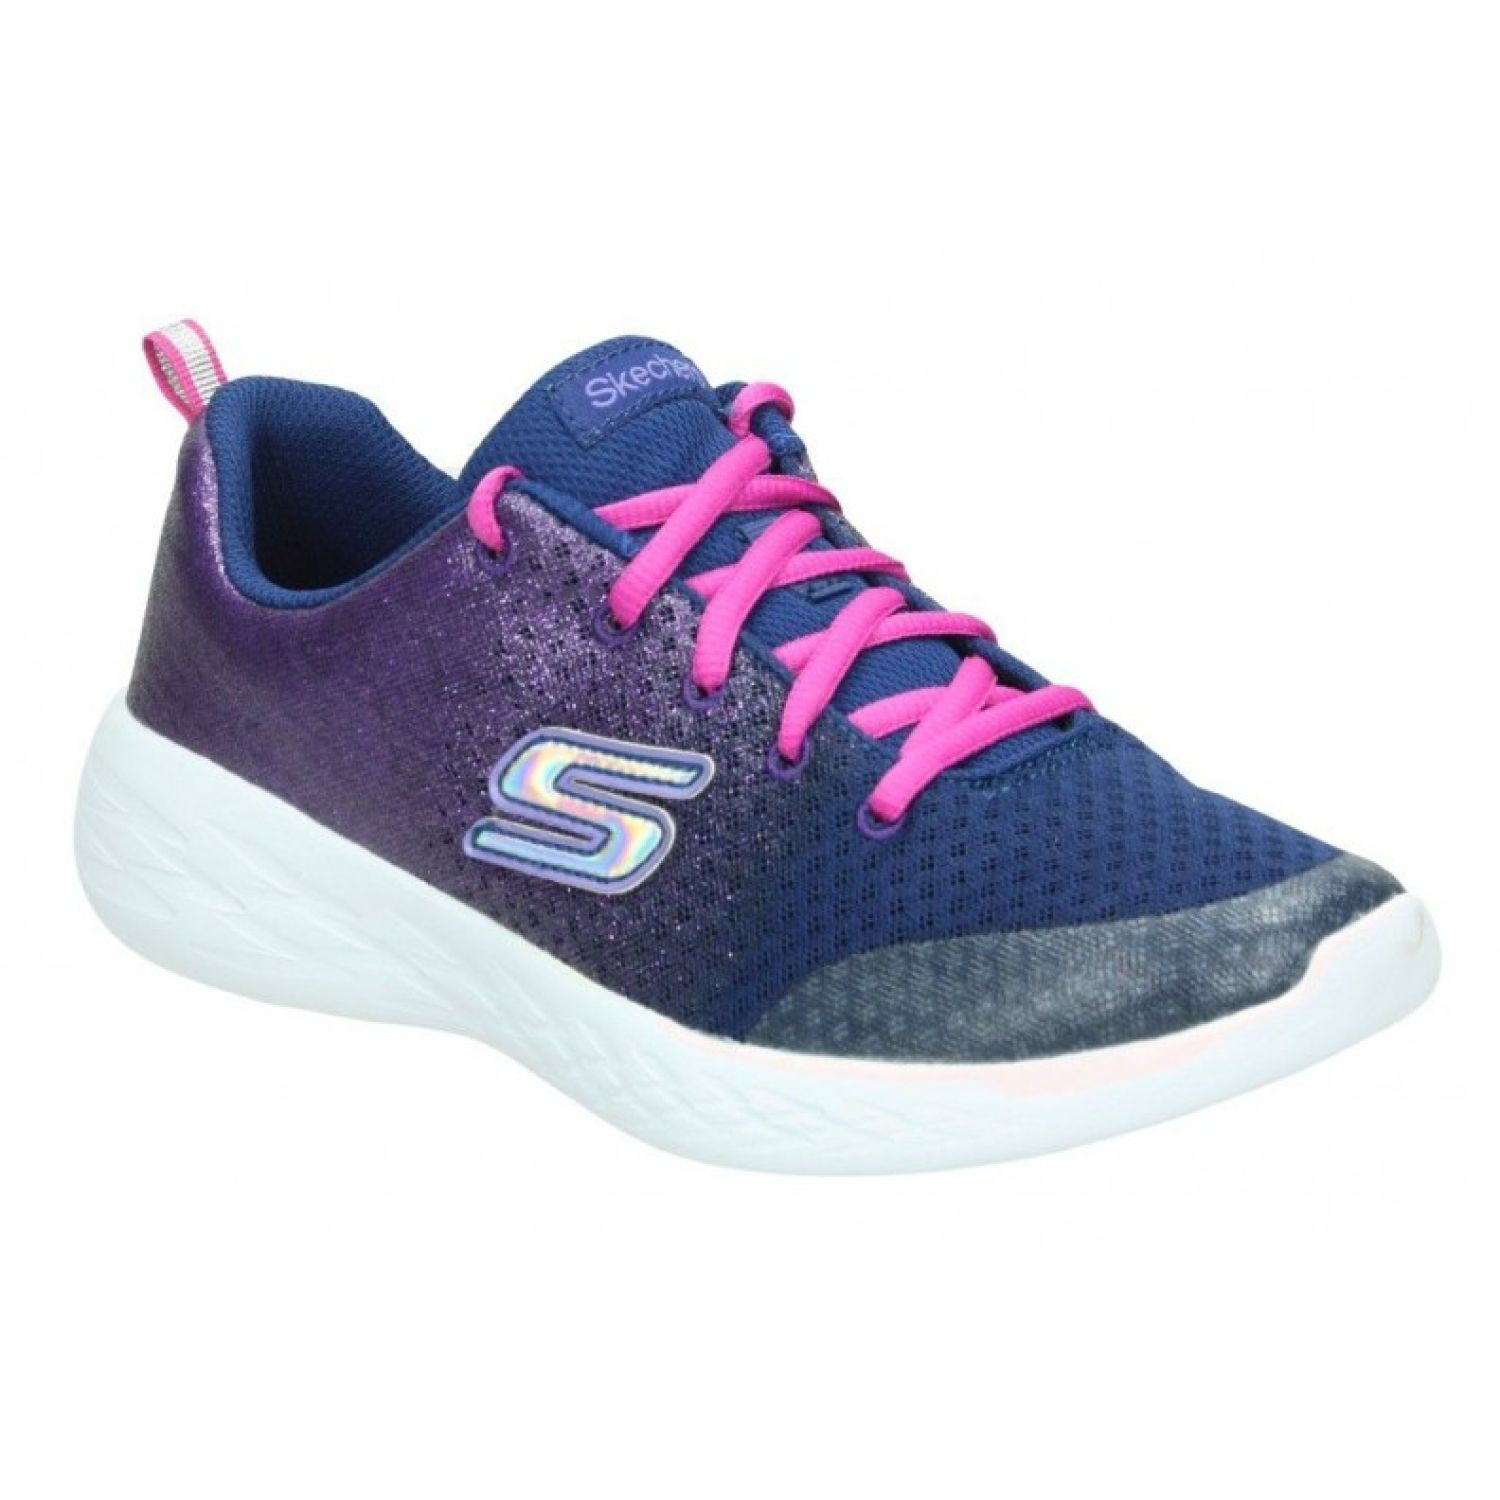 Skechers go run 600 - sparkle speed Azul / lila Walking